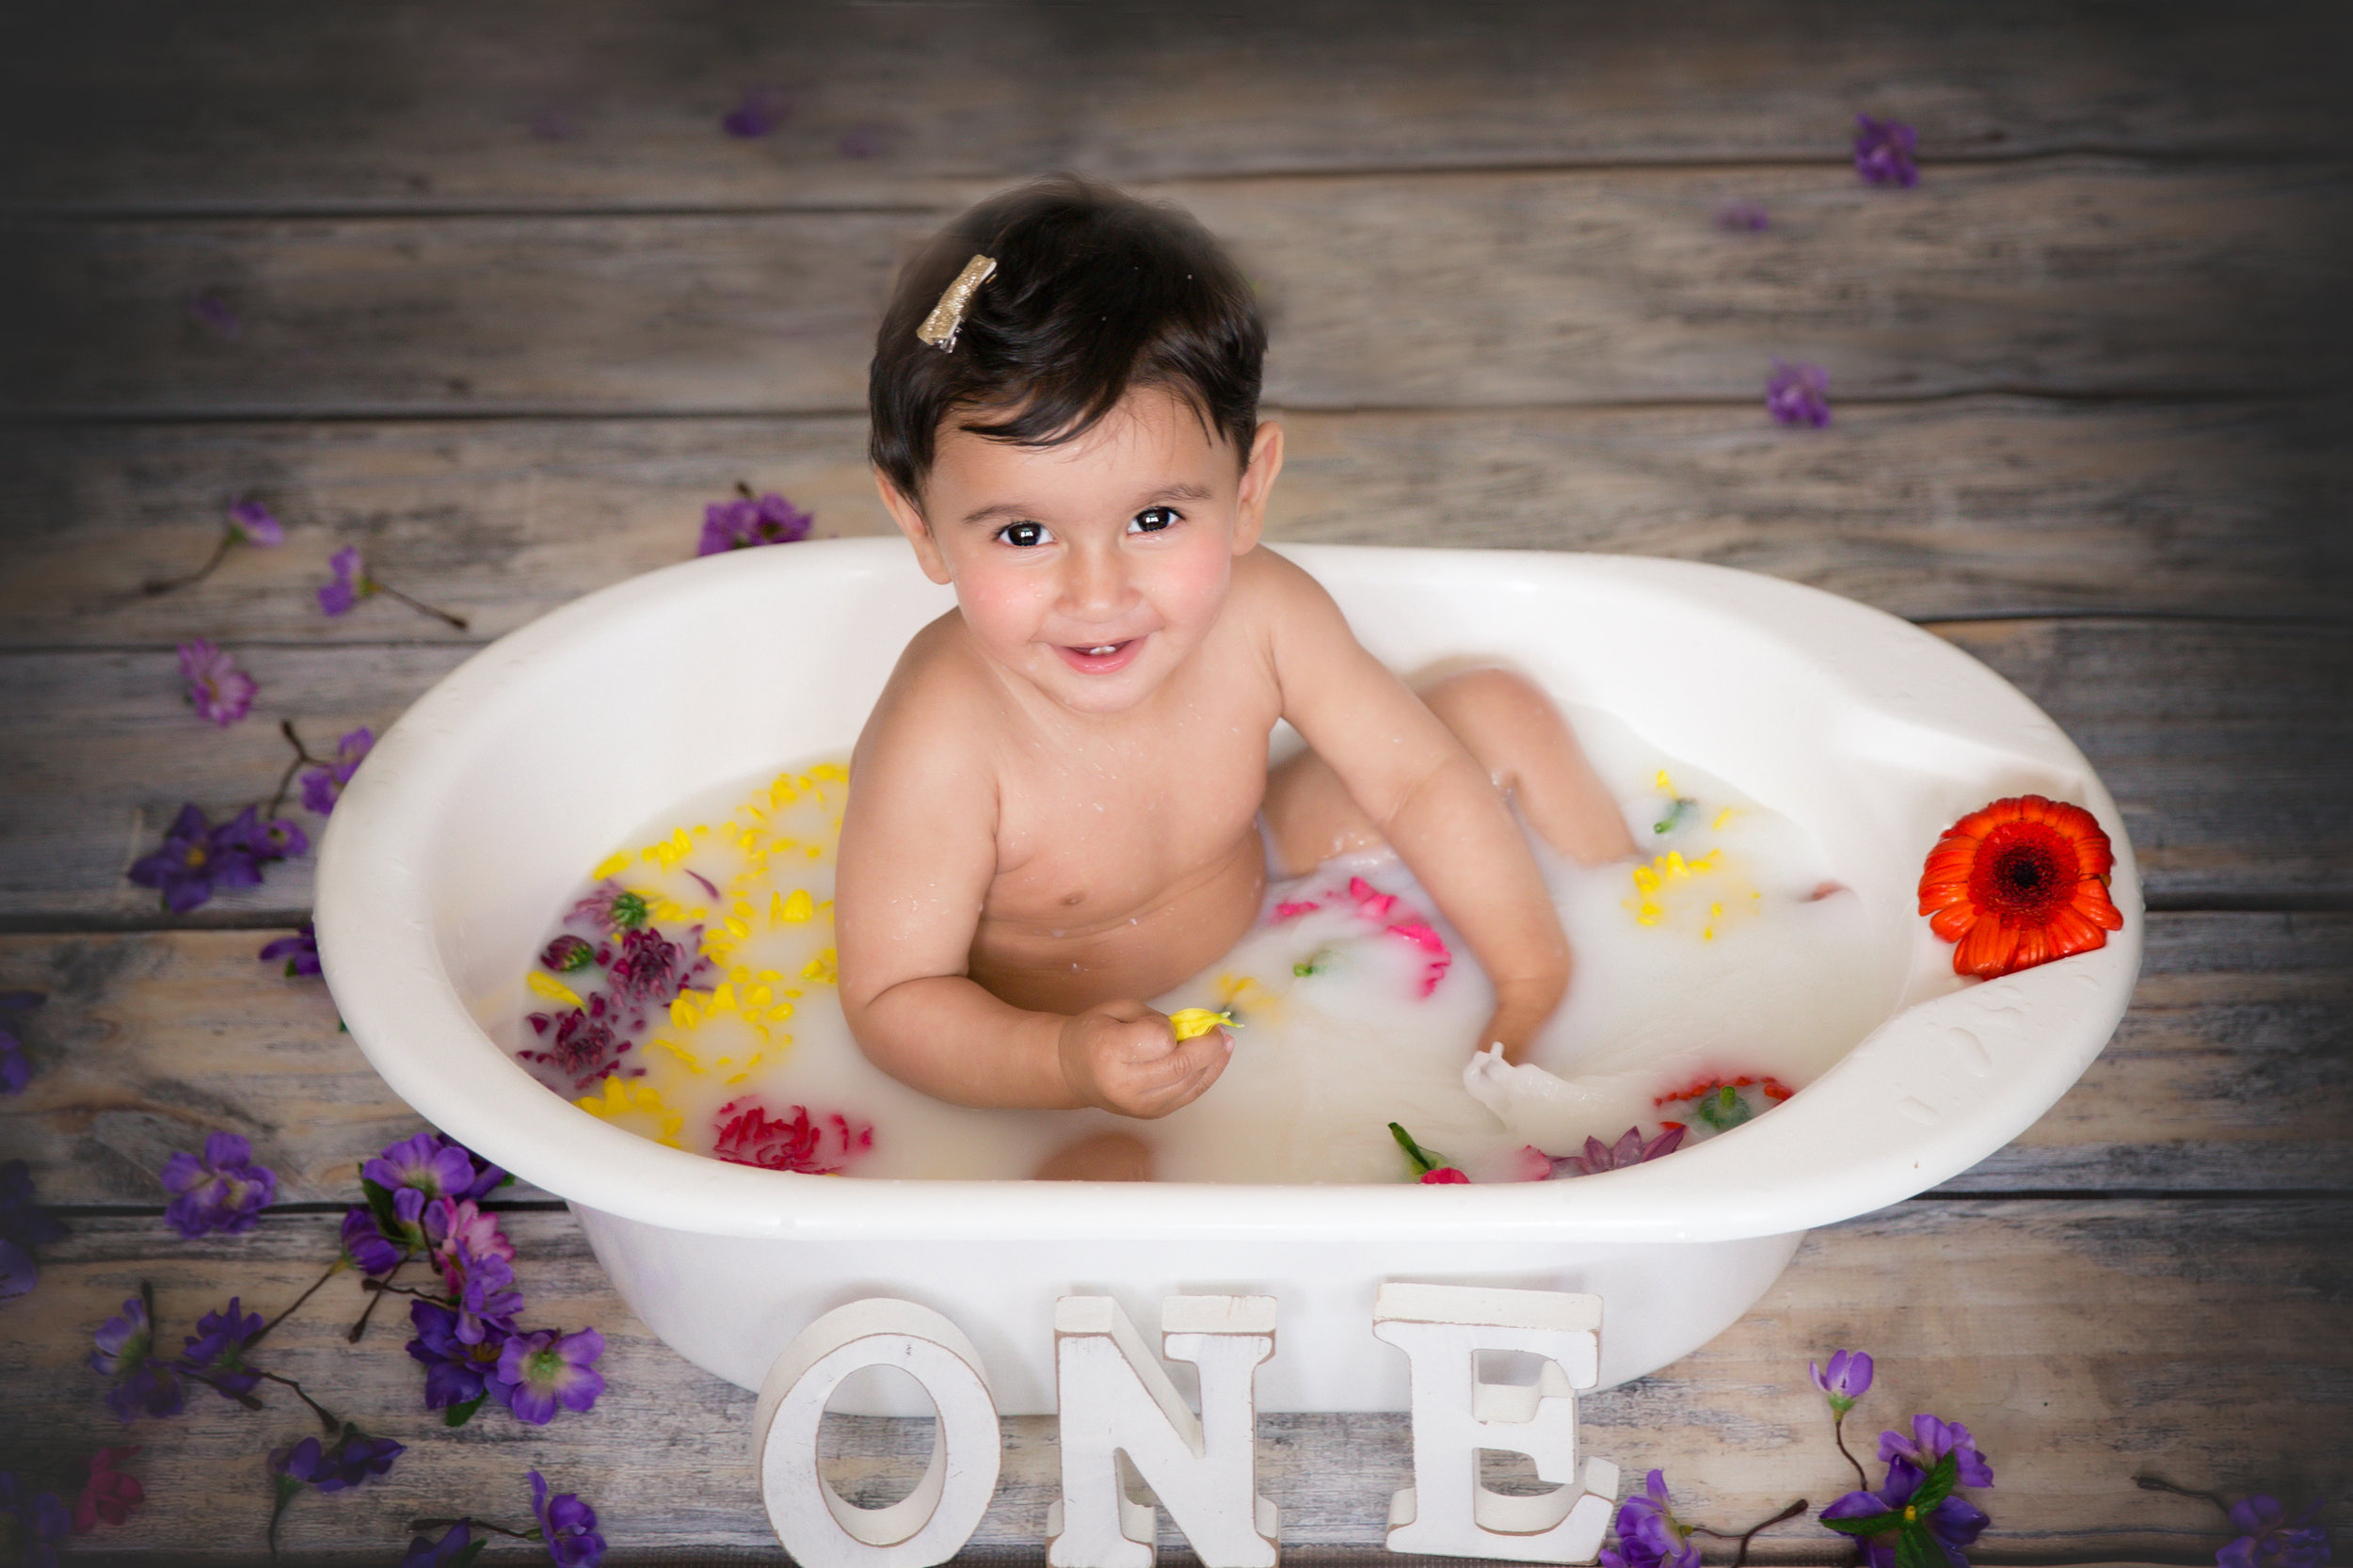 Milk bath for a one year old. Little girl sitting in a milk bath, surrounded by flowers and smiling. Milk bath photoshoot. Calgary photographer. Milashka Photography.